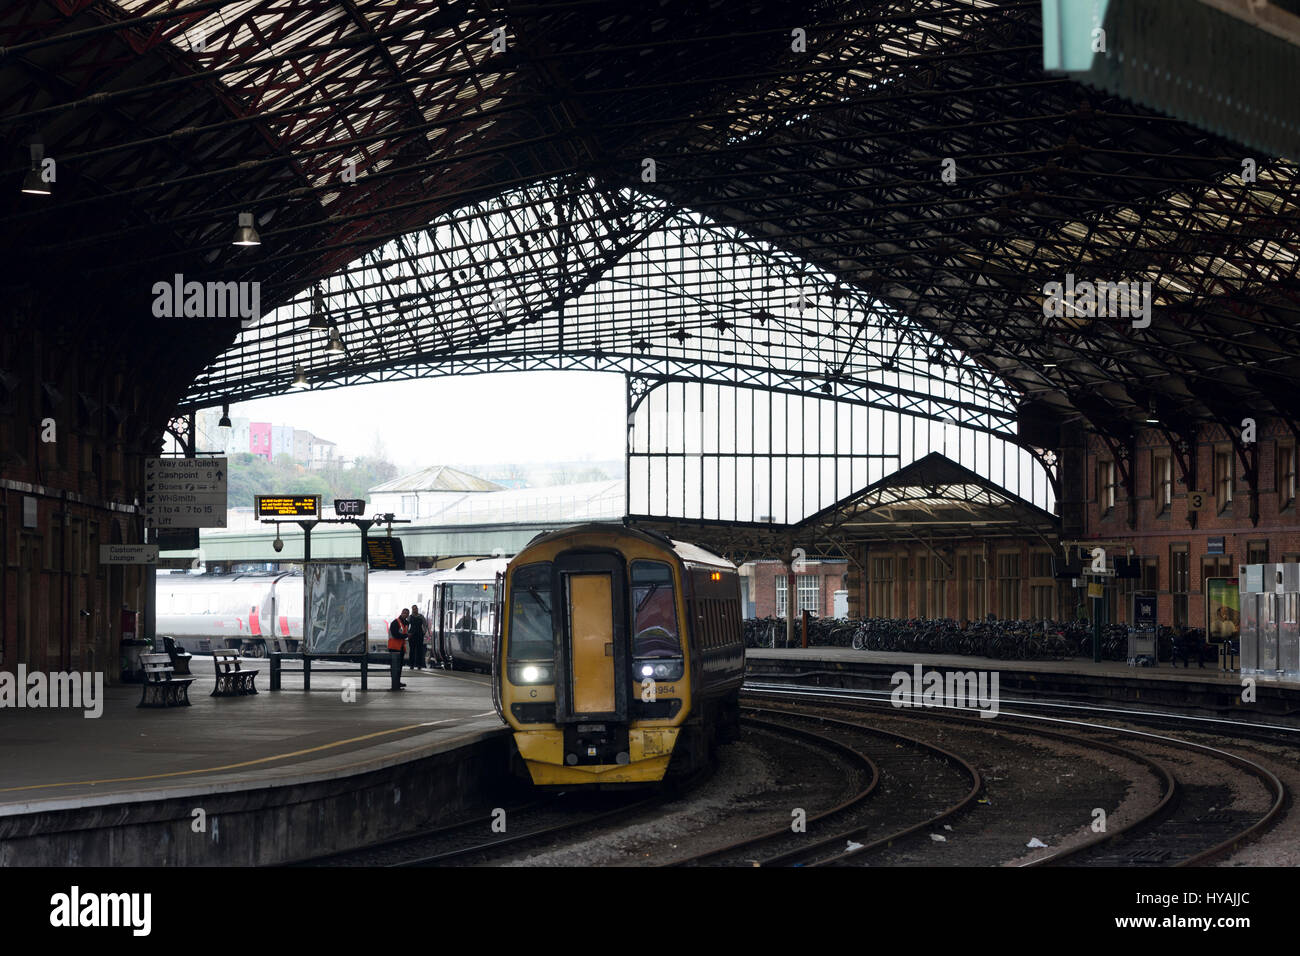 First Great Western class 158 diesel  train at Bristol Temple Meads station, UK Stock Photo